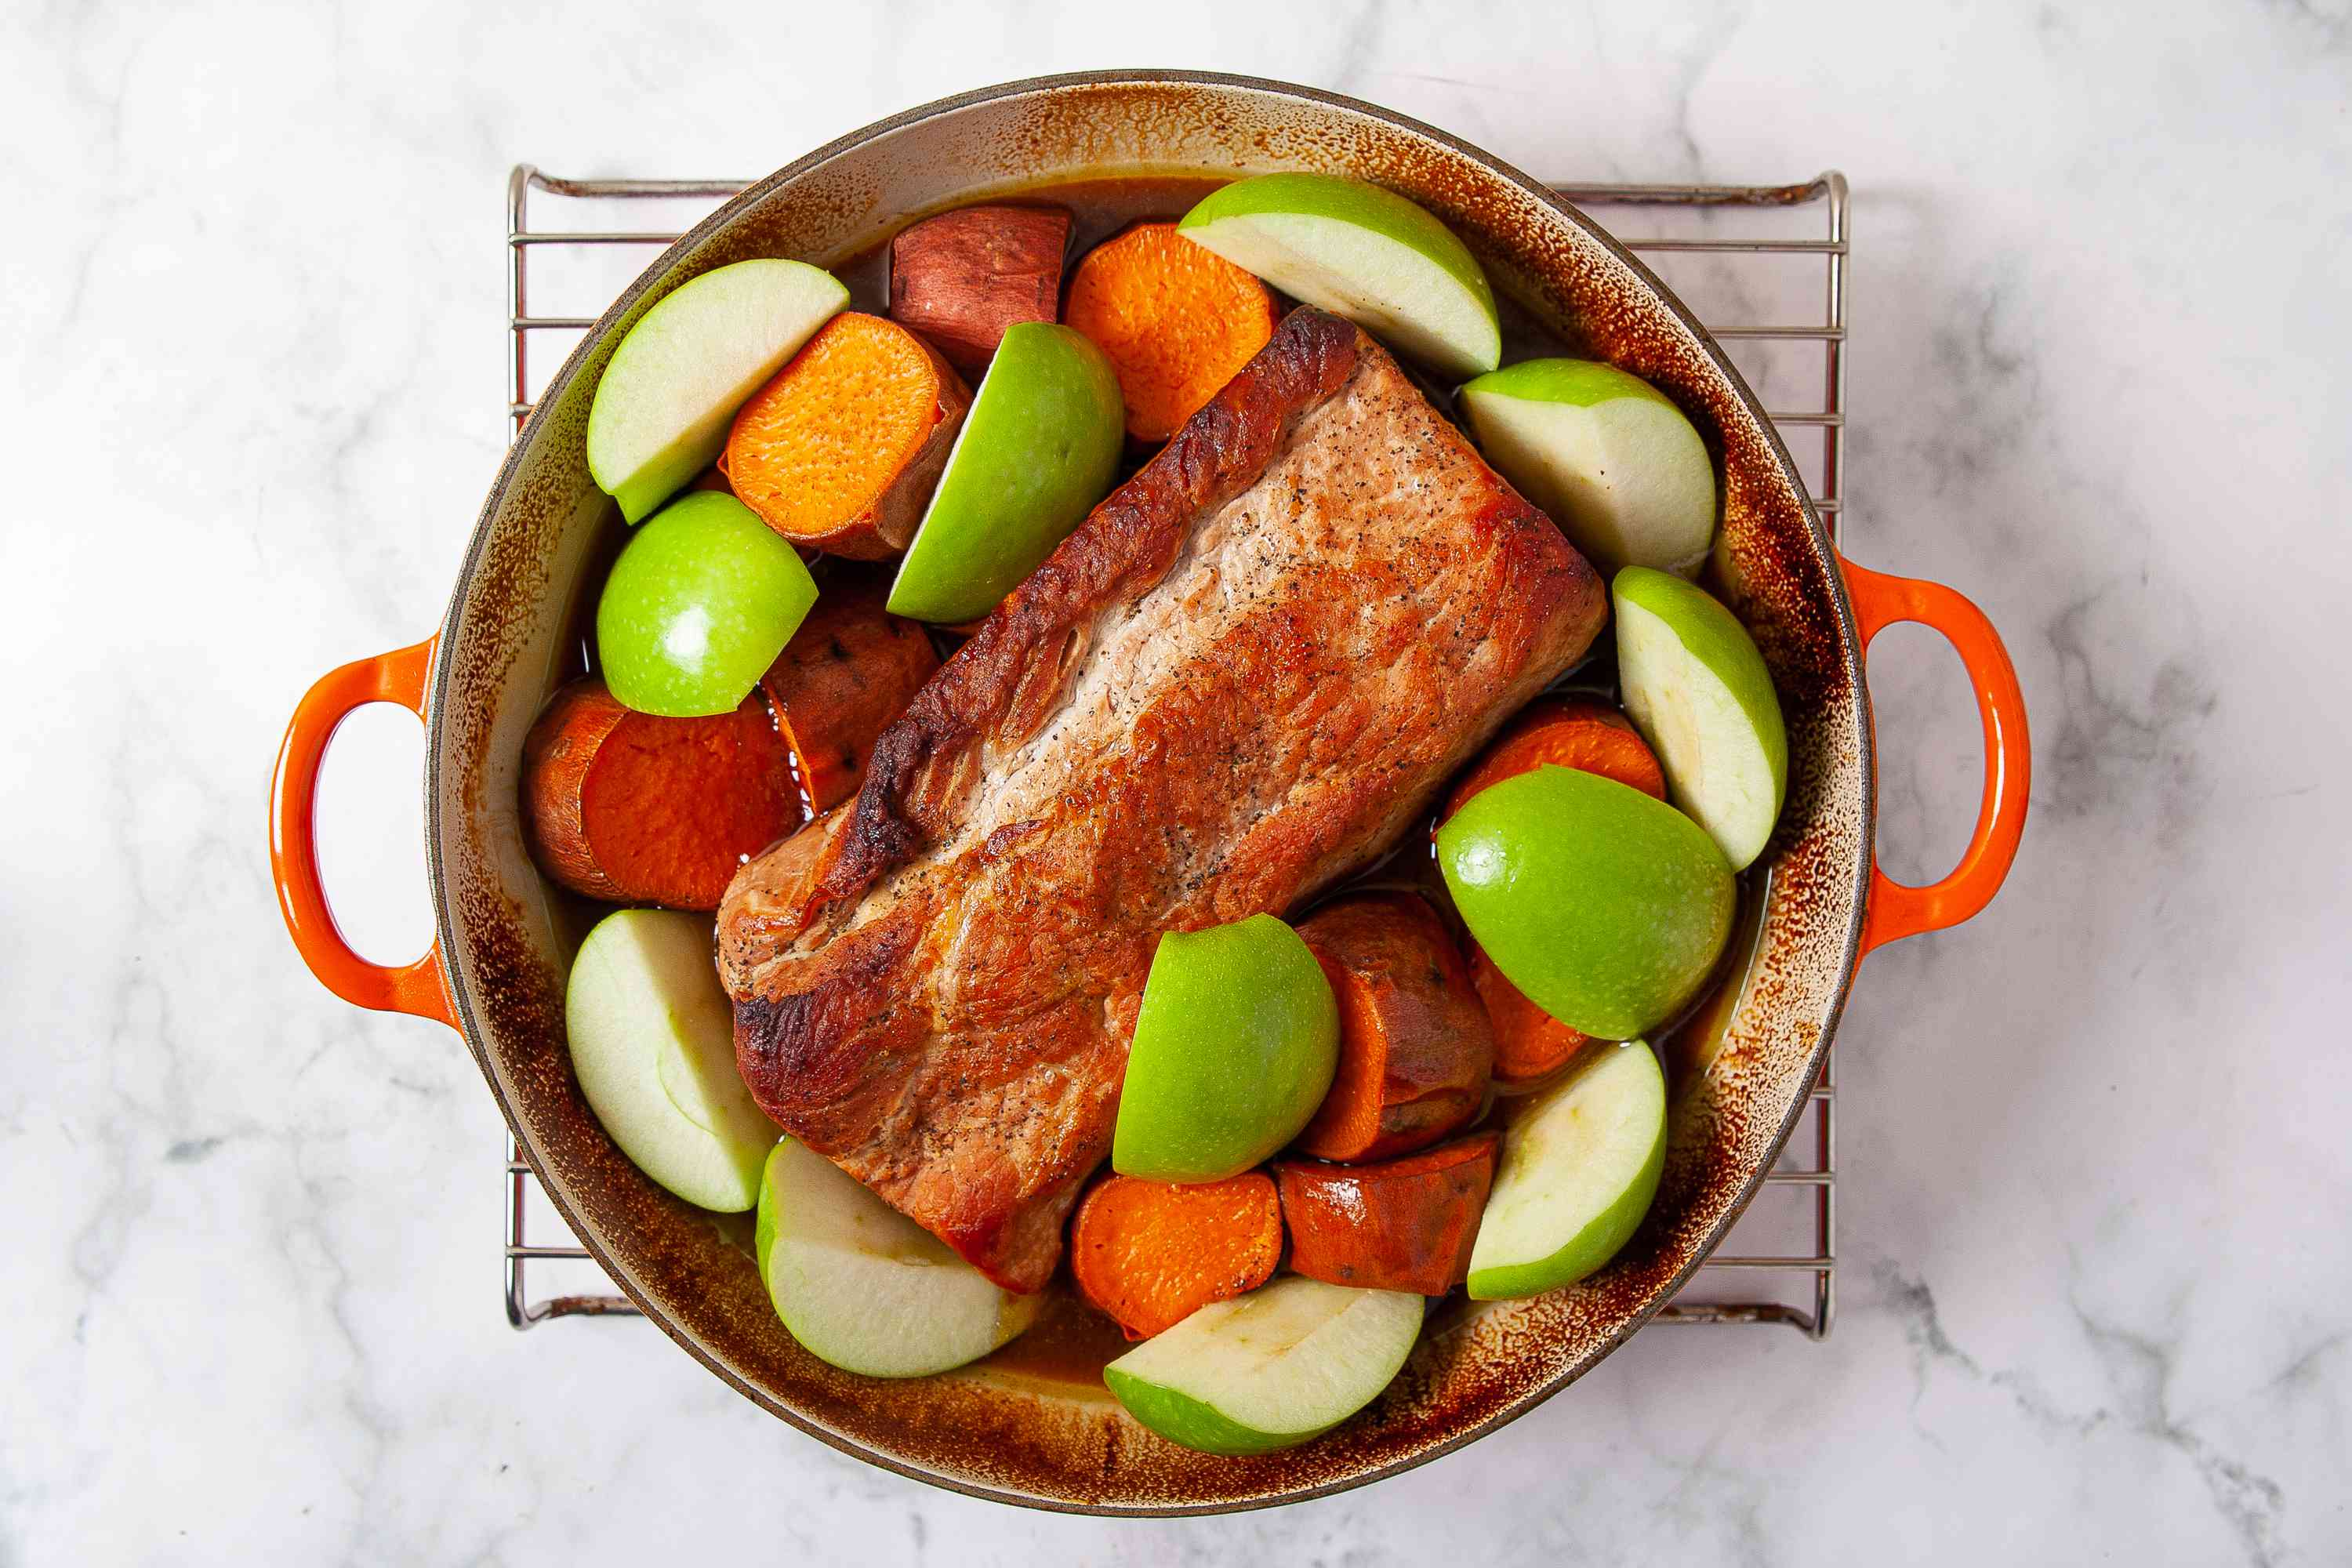 apples, sweet potatoes and pork loin in a Dutch oven